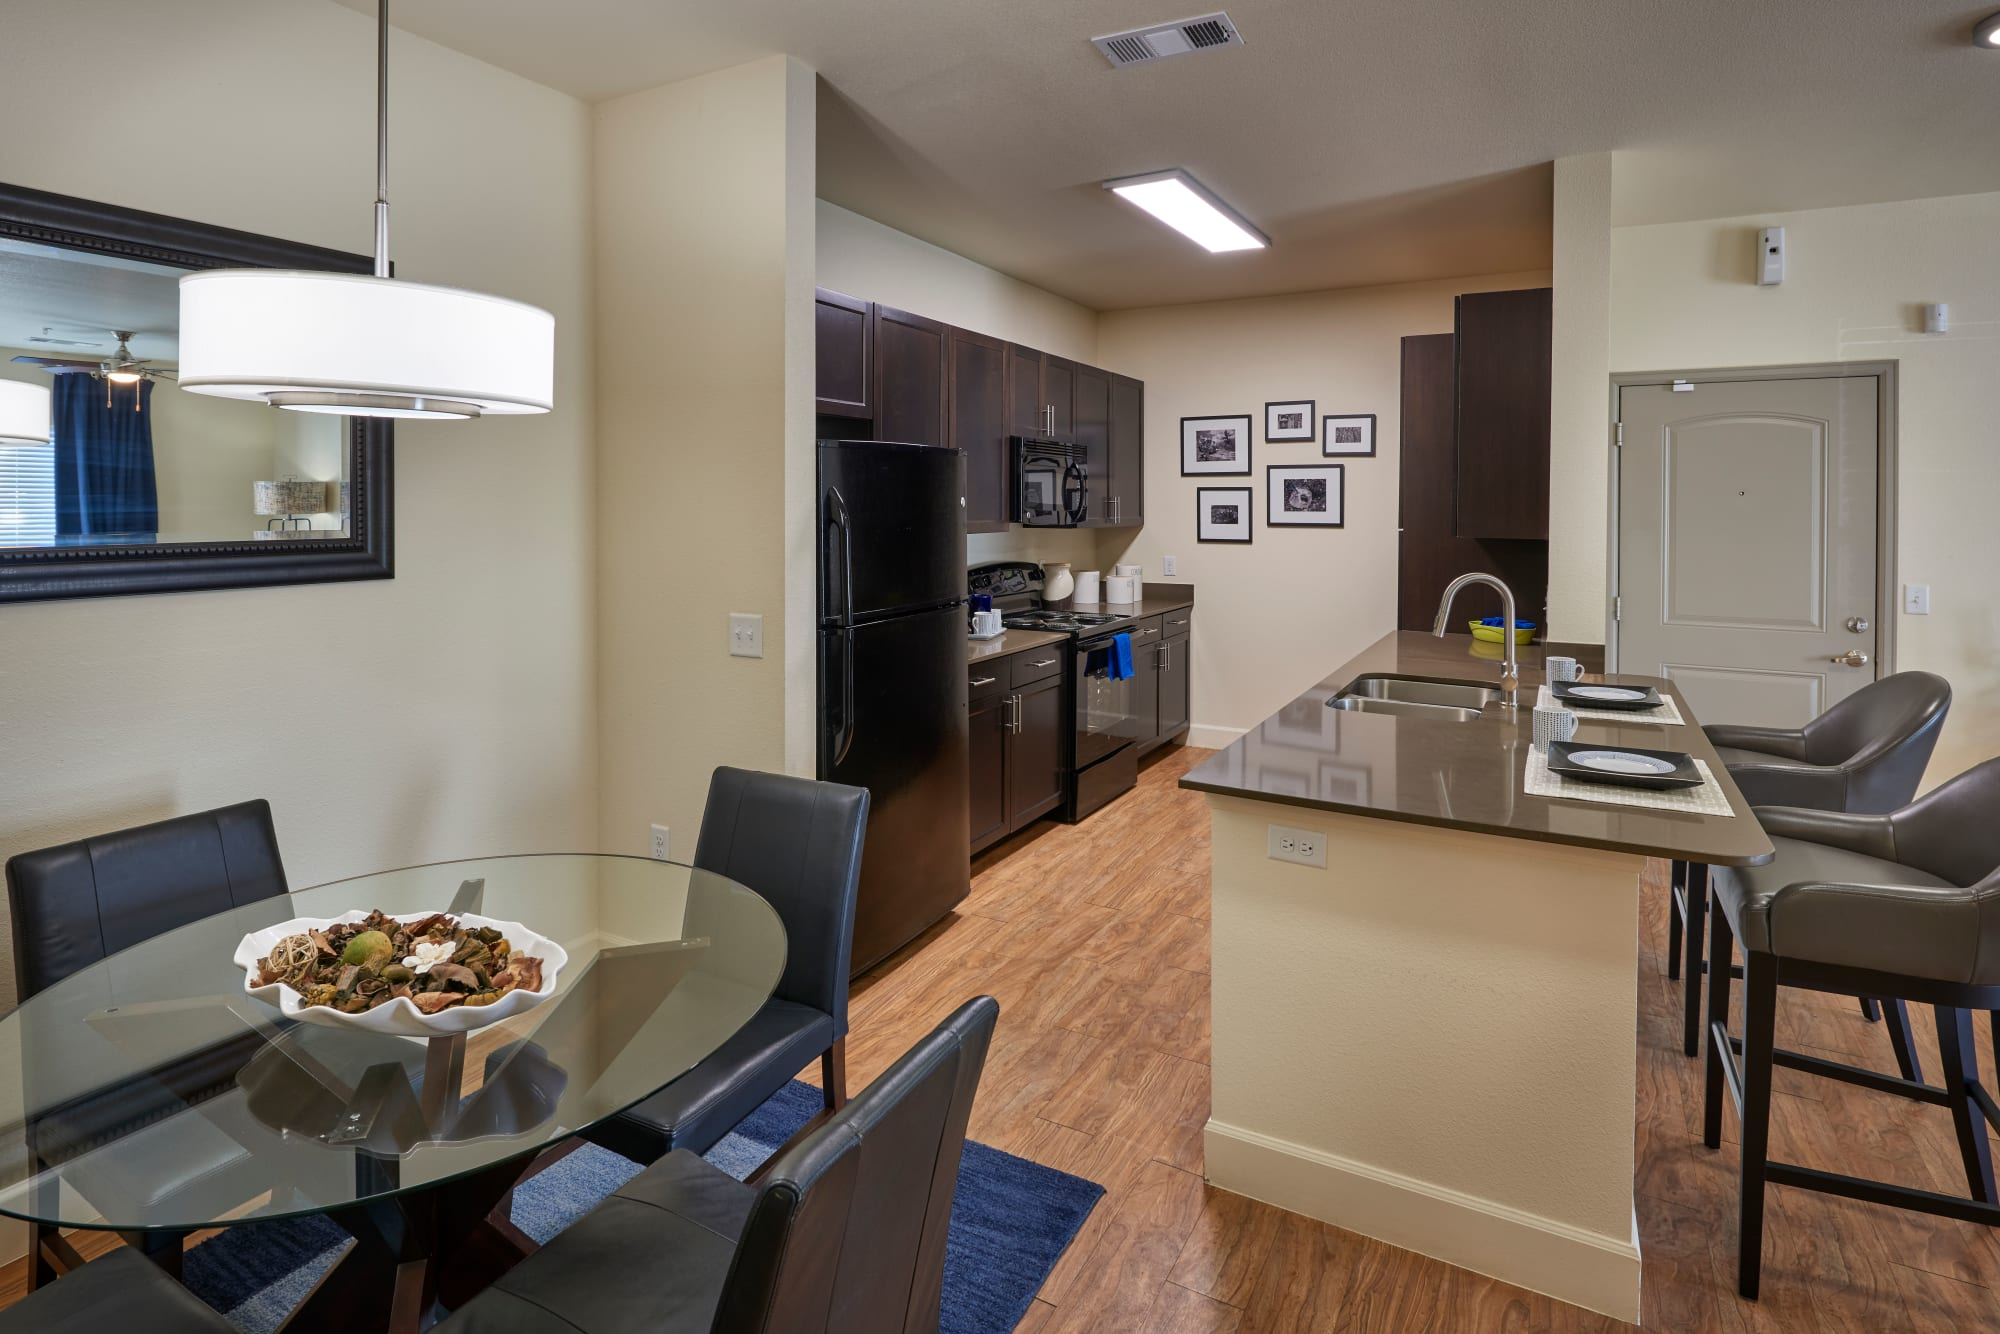 Kitchen, dining area, and living room are connected in this open floor plan at M2 Apartments in Denver, Colorado